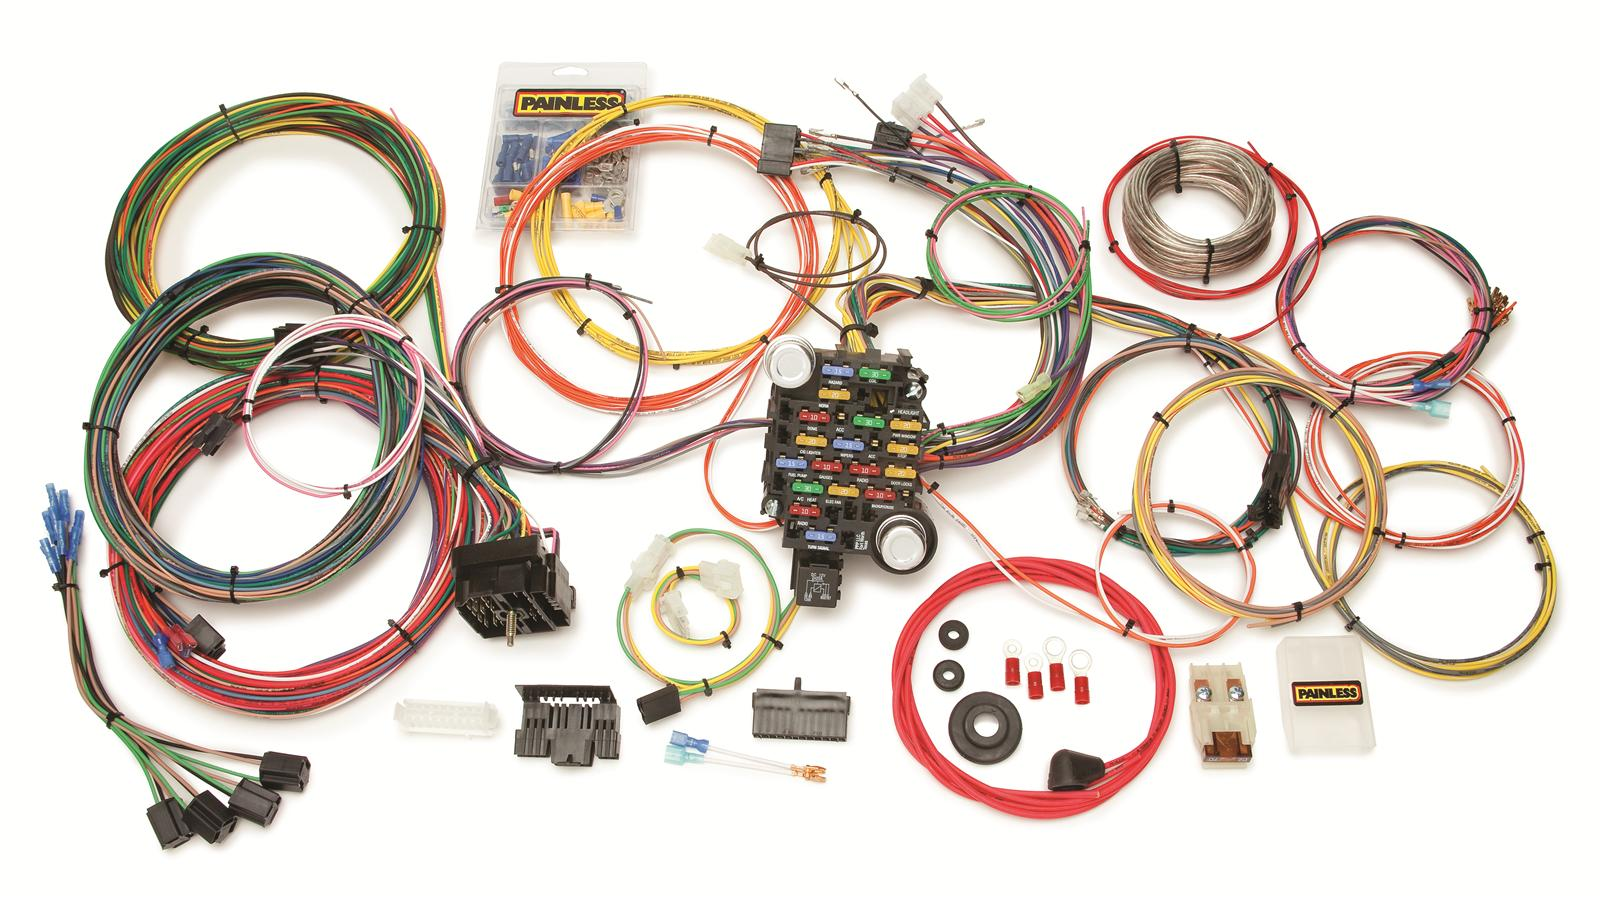 prf 10205_xl painless performance gmc chevy truck harnesses 10205 free gm truck wiring harness at cita.asia